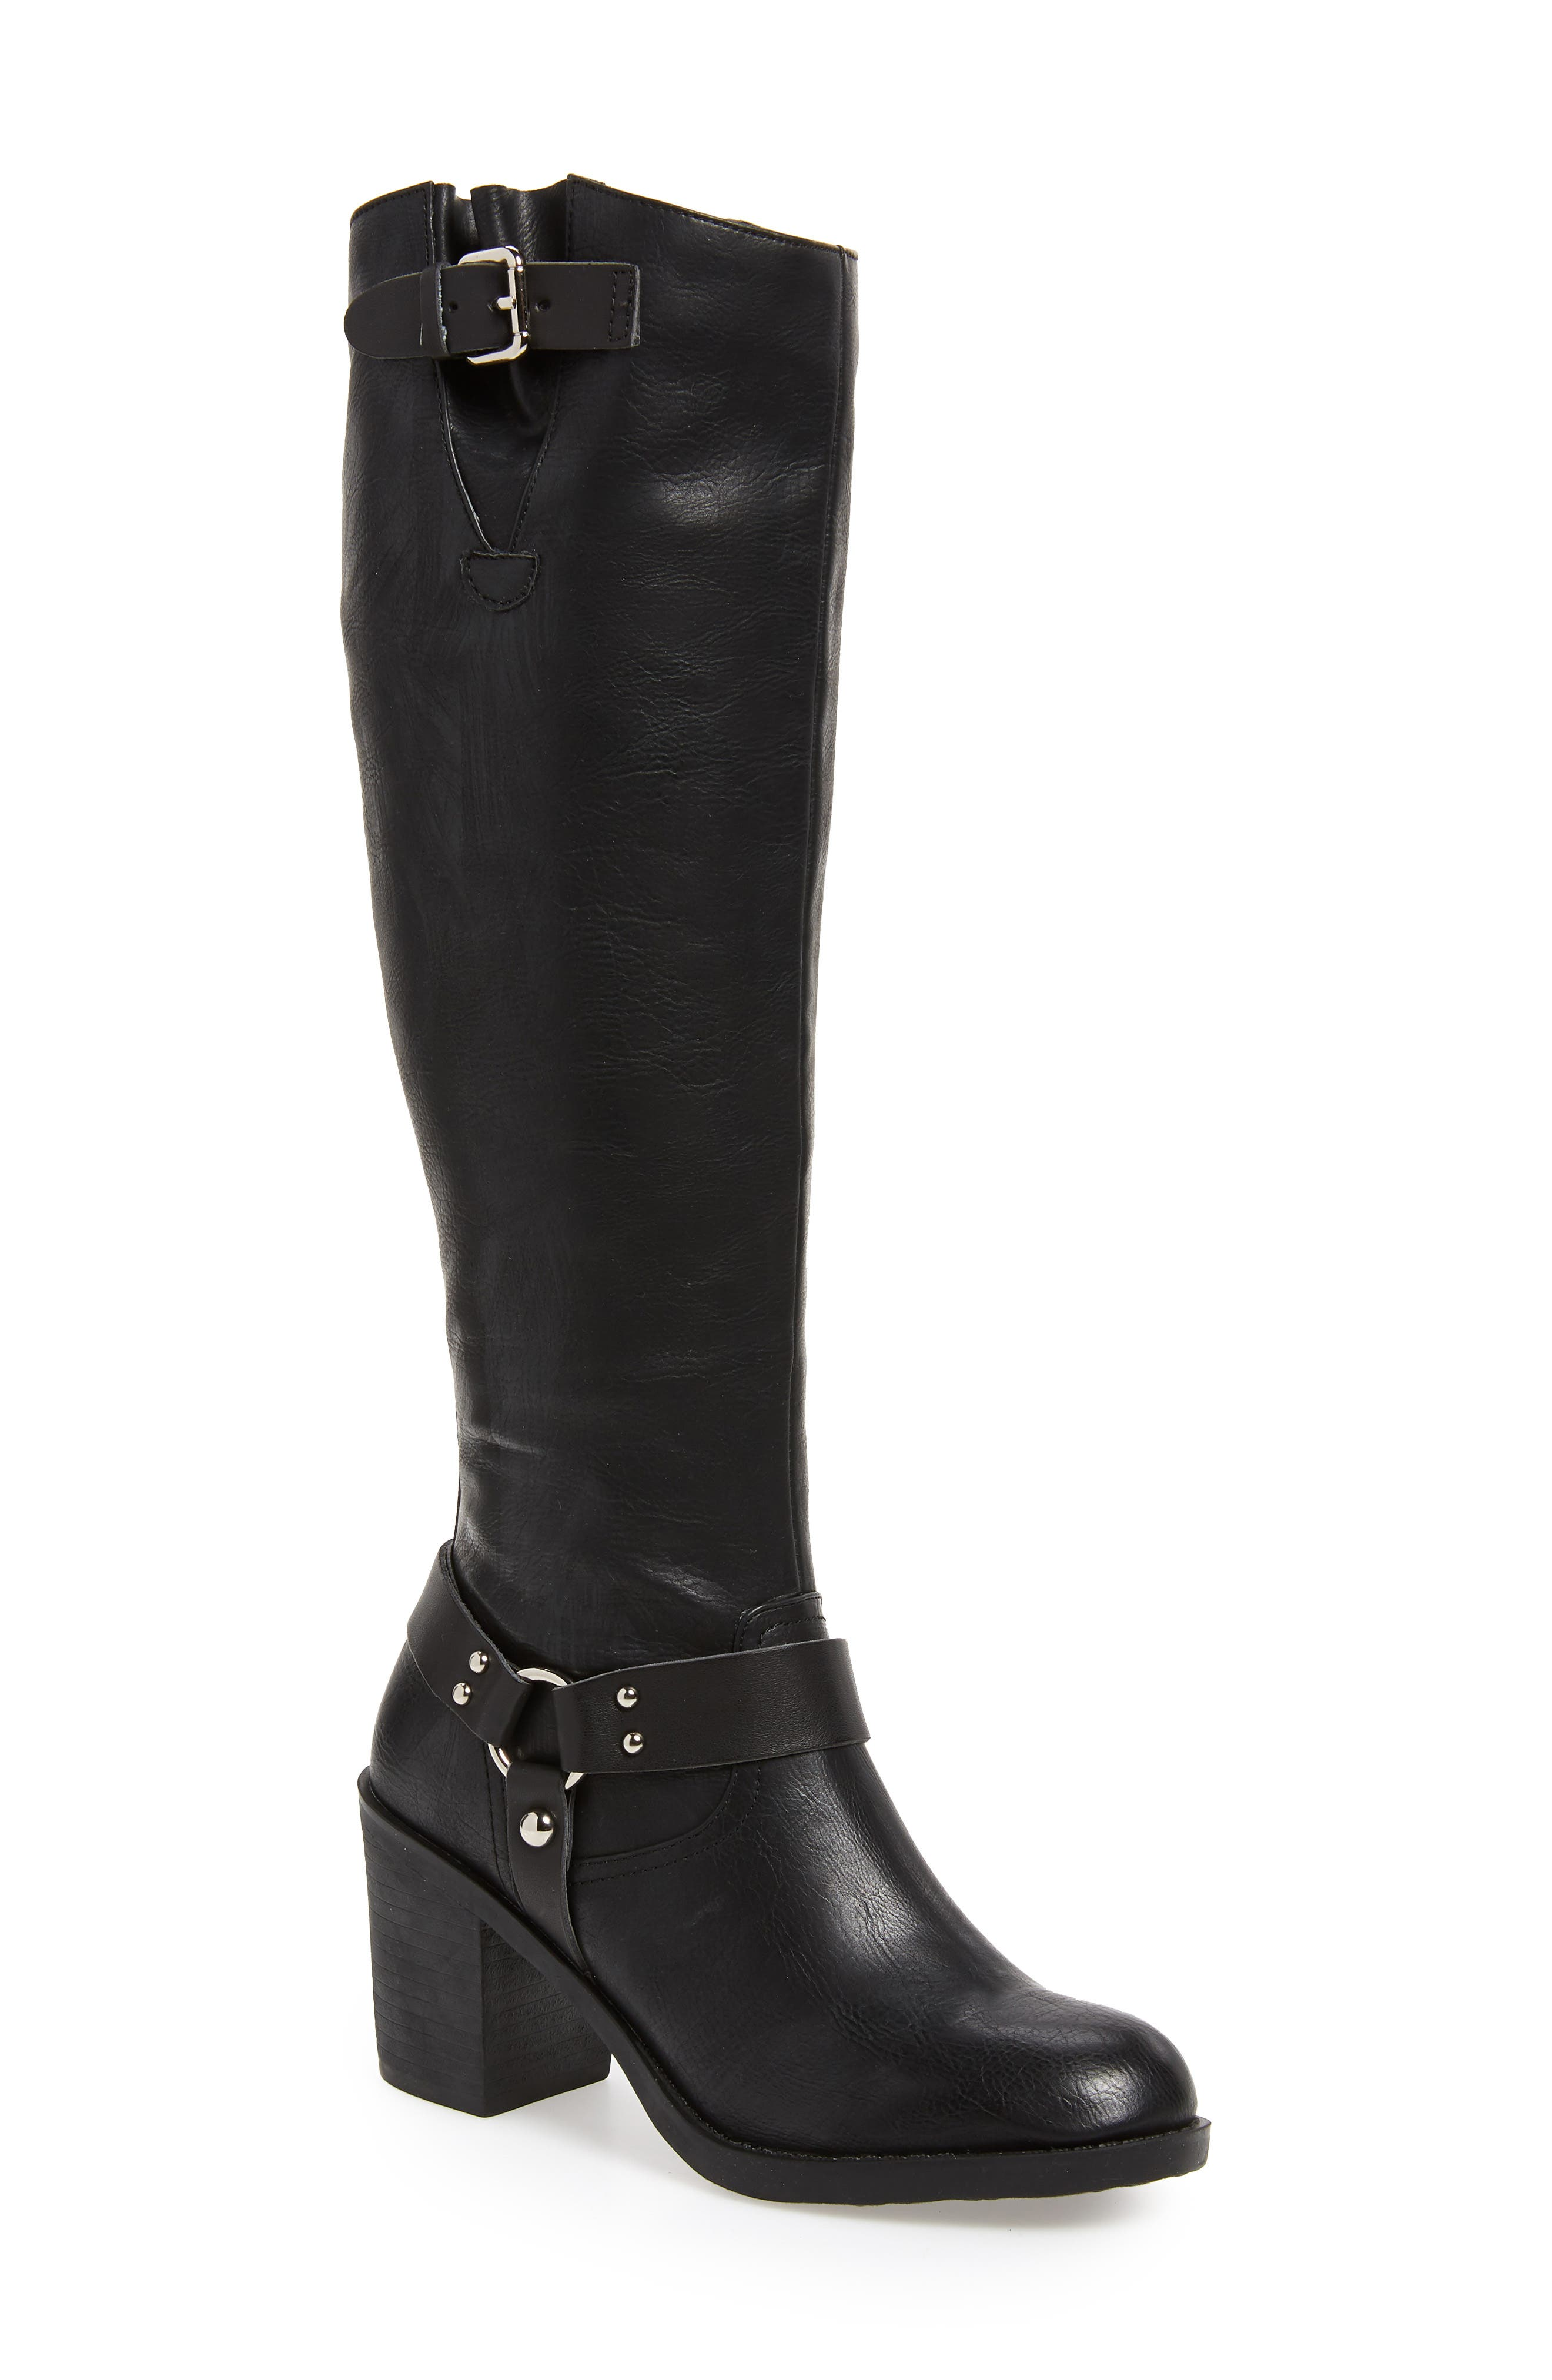 Sbicca Dimarco Knee High Boot- Black